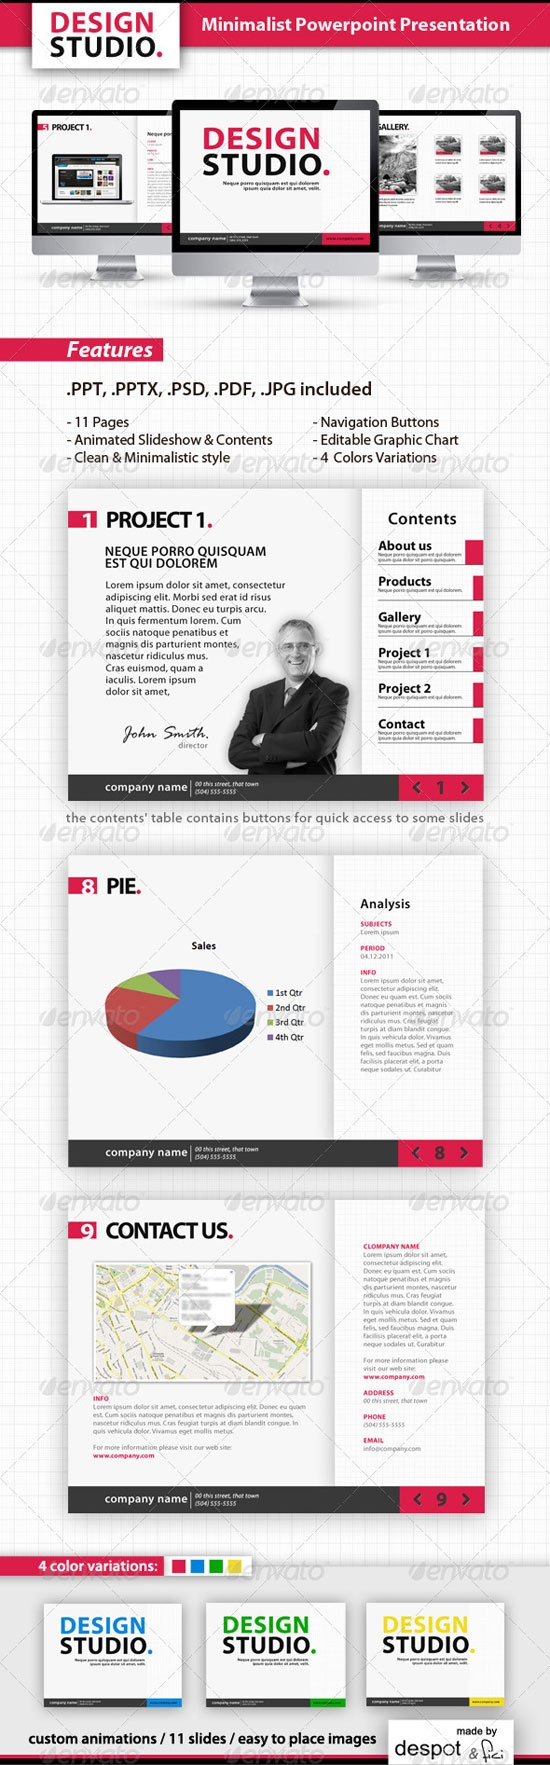 great site to get you thinking about PowerPoint template layouts